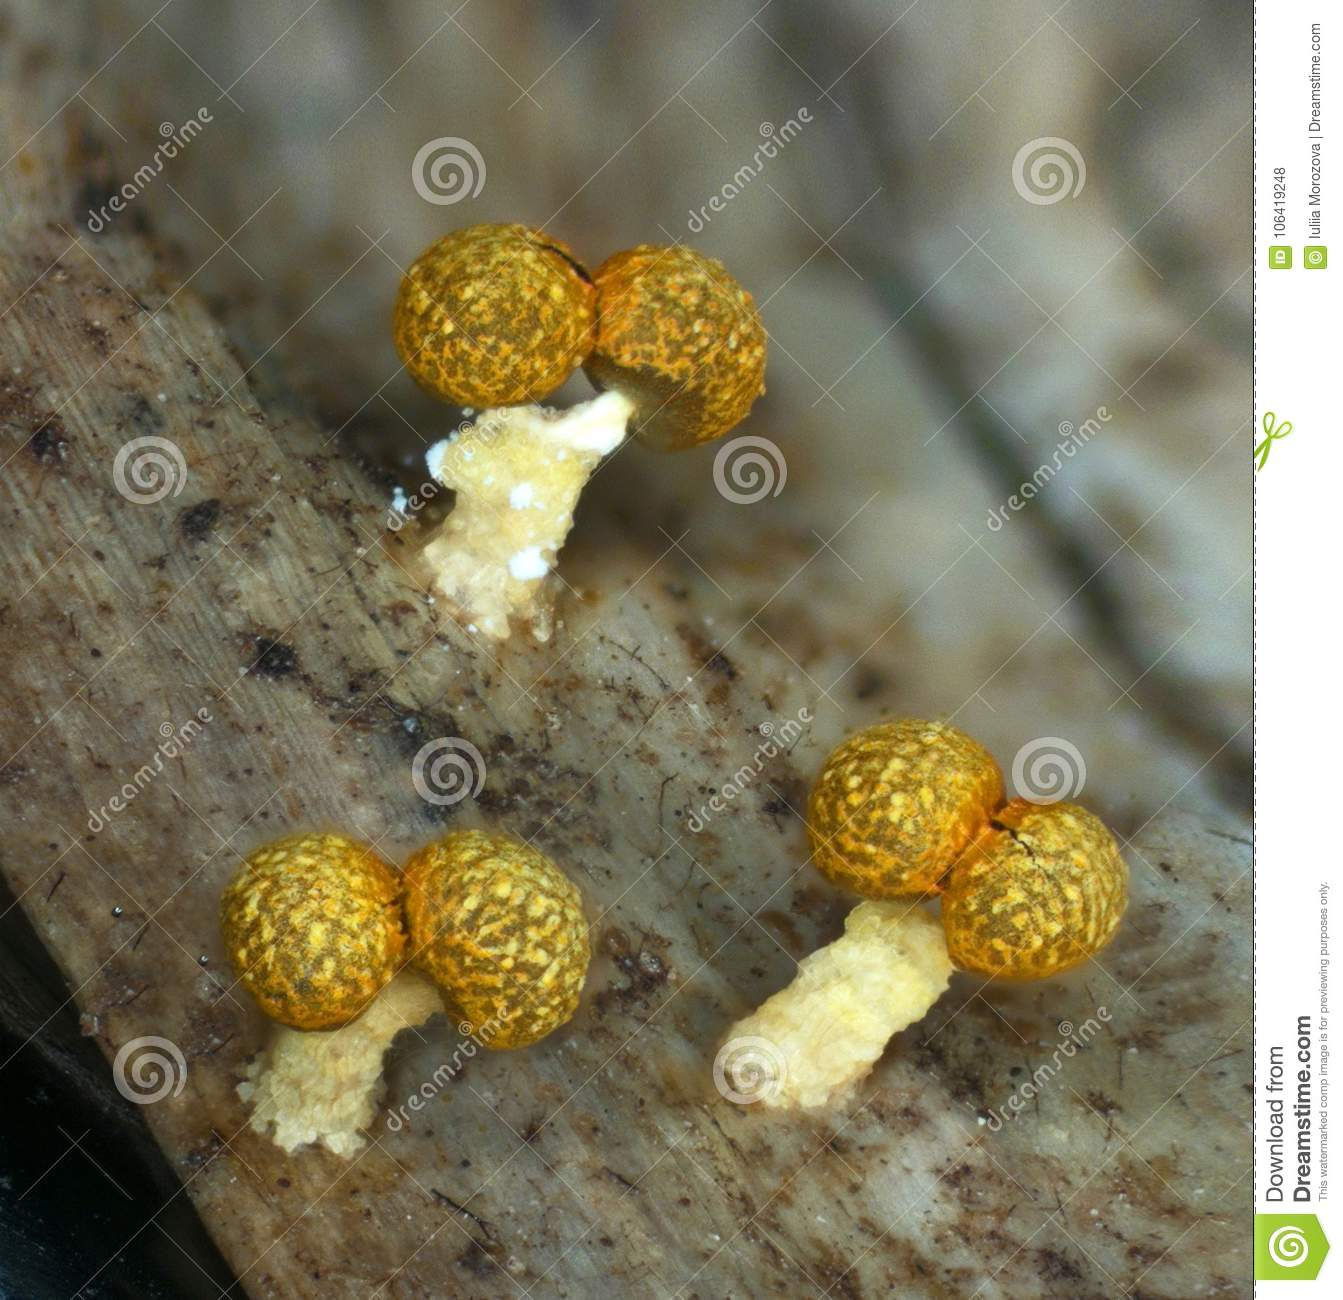 Fruit Bodies Of A Slime Mold Physarum Polycephalum Stock Photo